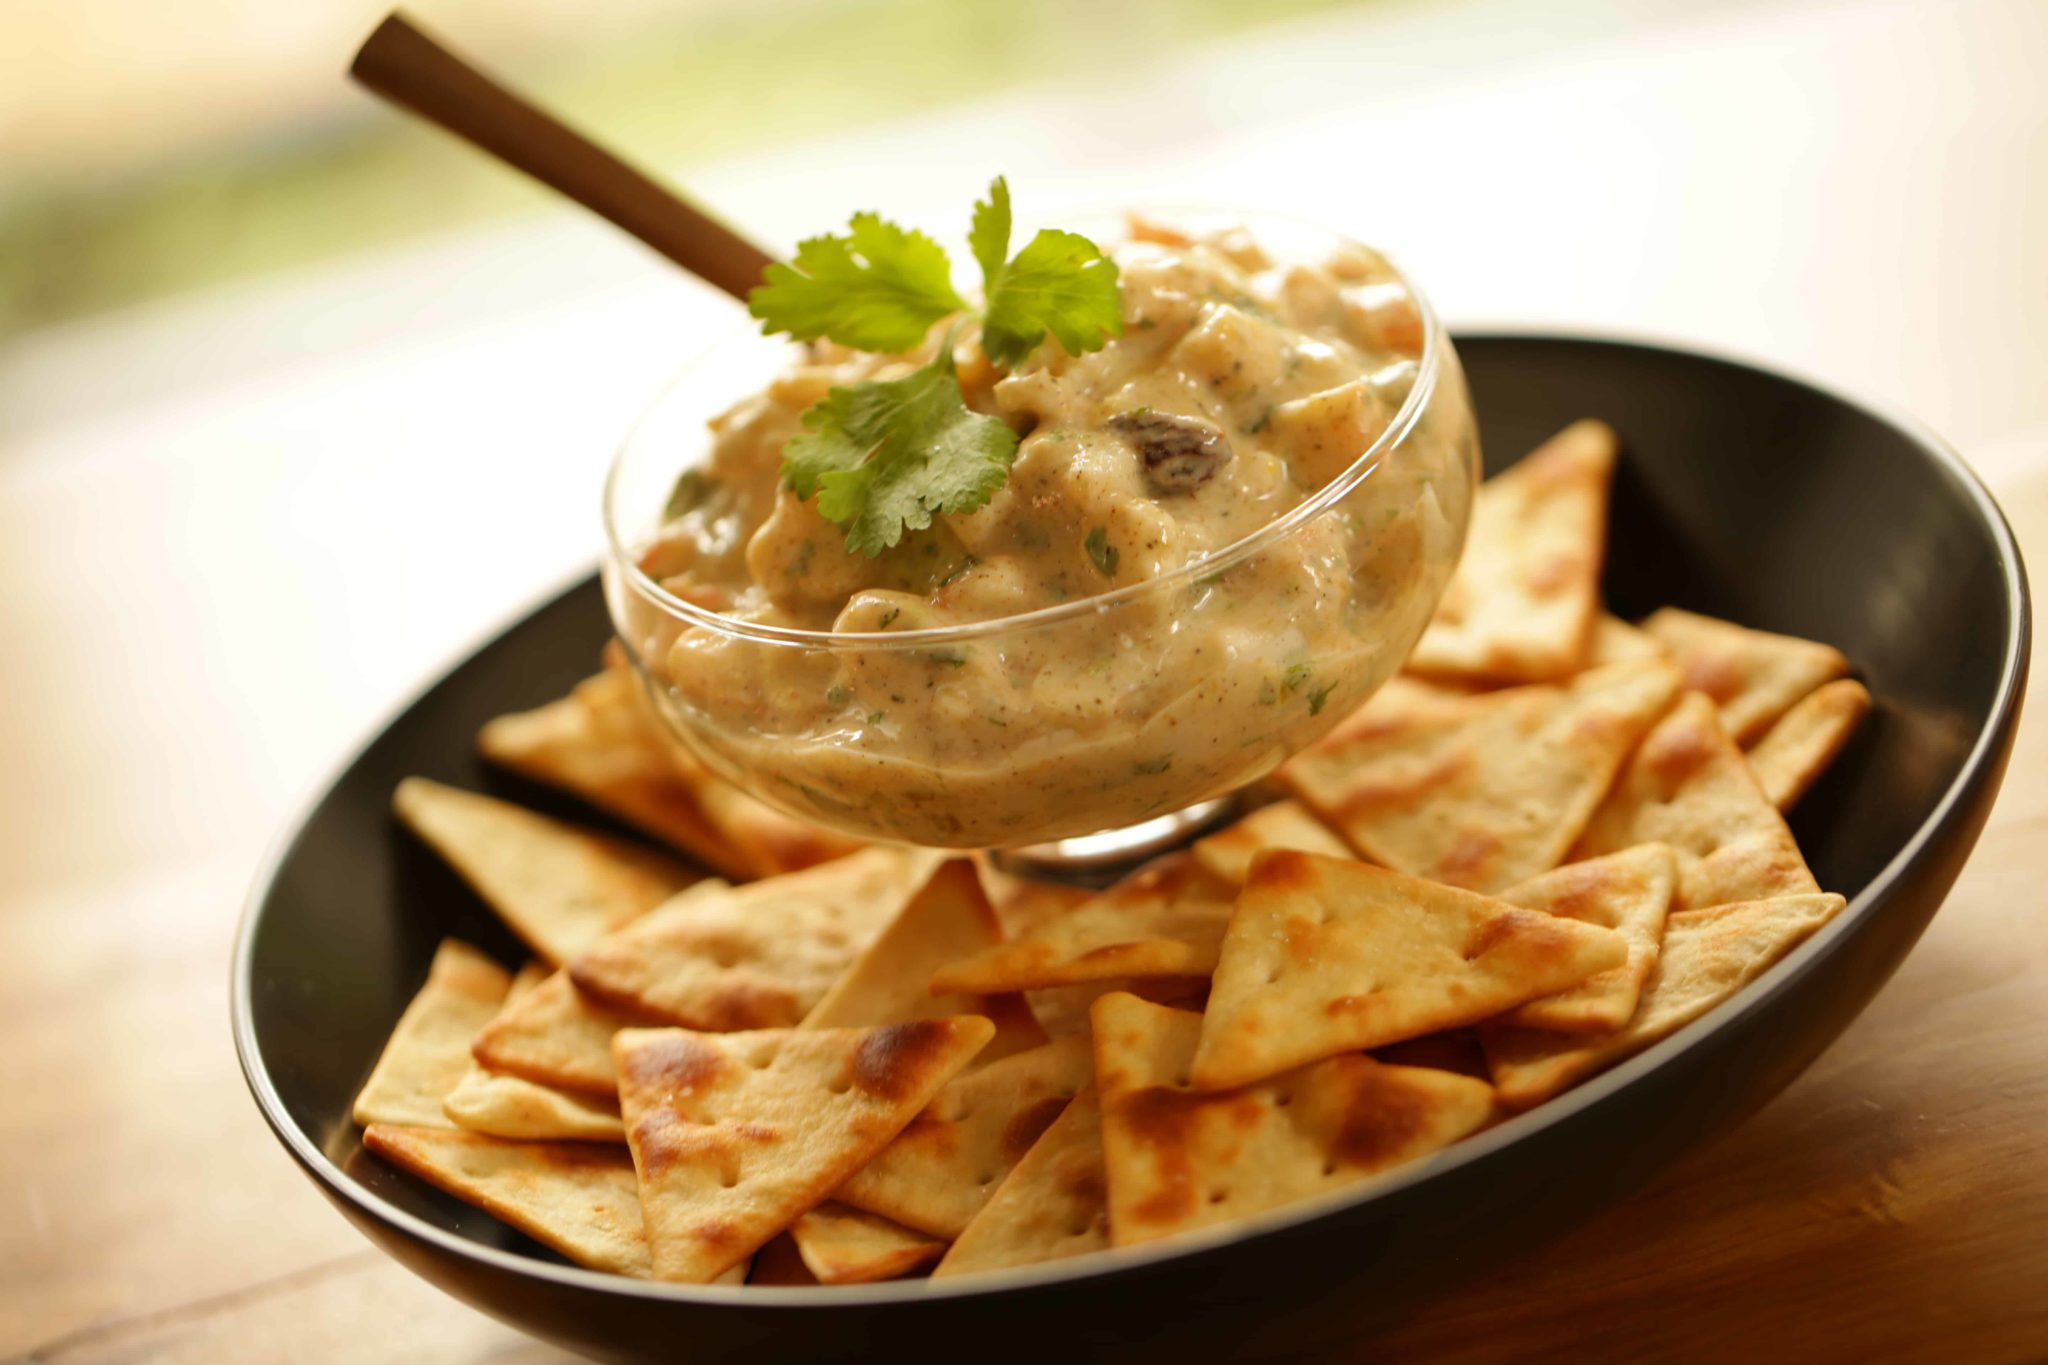 Shrimp Dip in a bowl with pita crackers